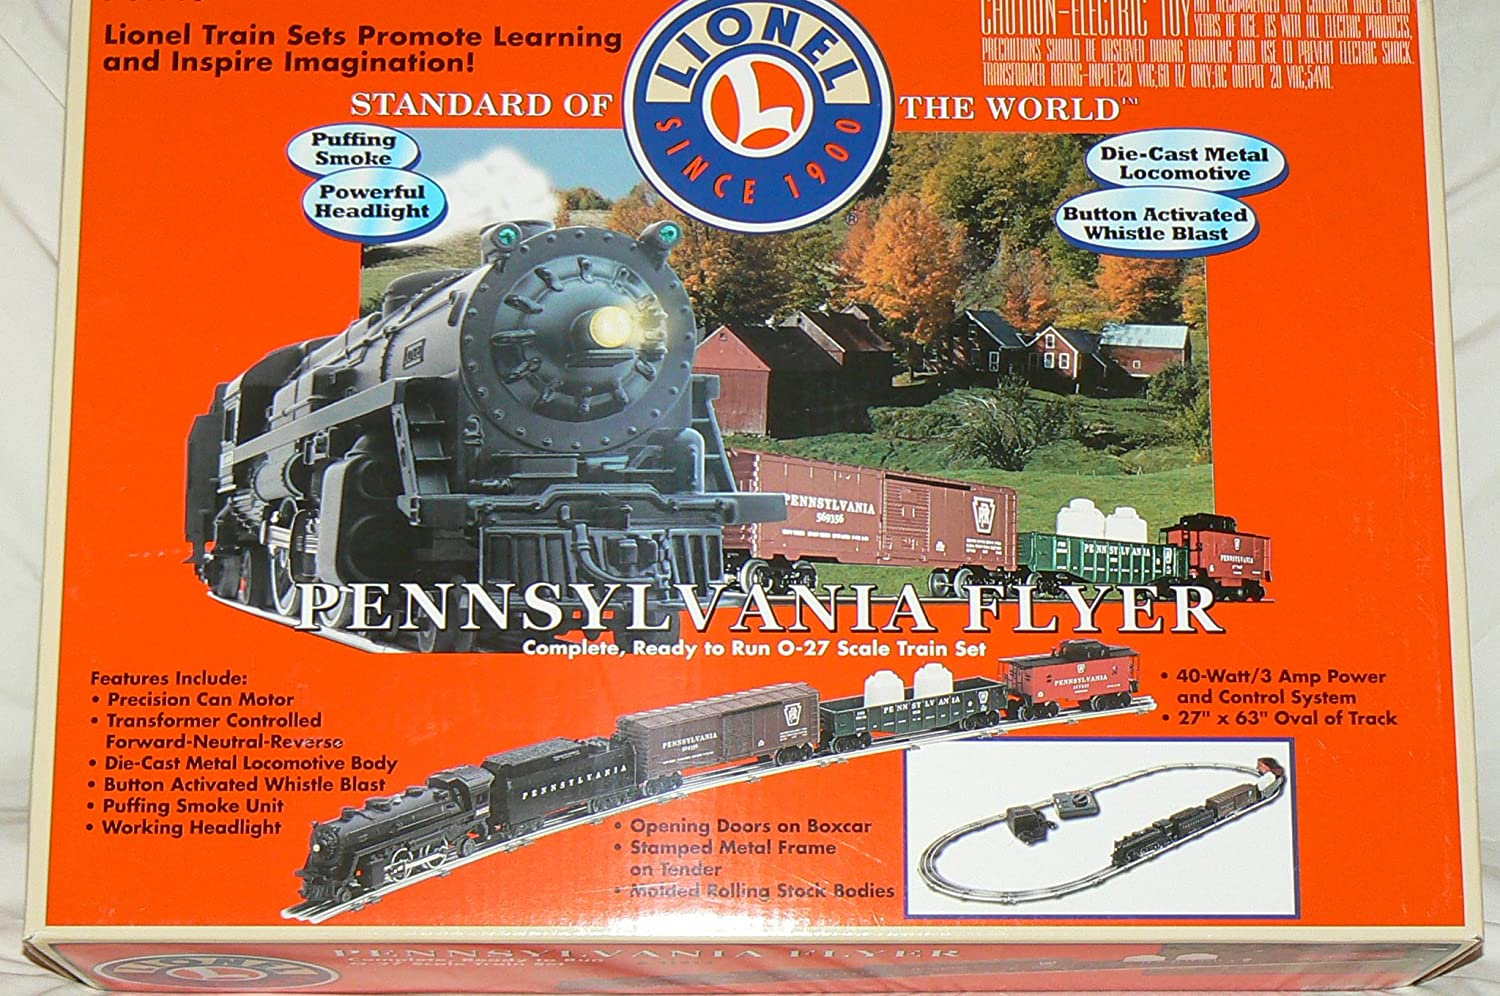 Center Off Switch Wired To Control Lionel Remote Track Pennsylvania Flyer Complete Ready Run O 27 Scale Train Set Toys Games